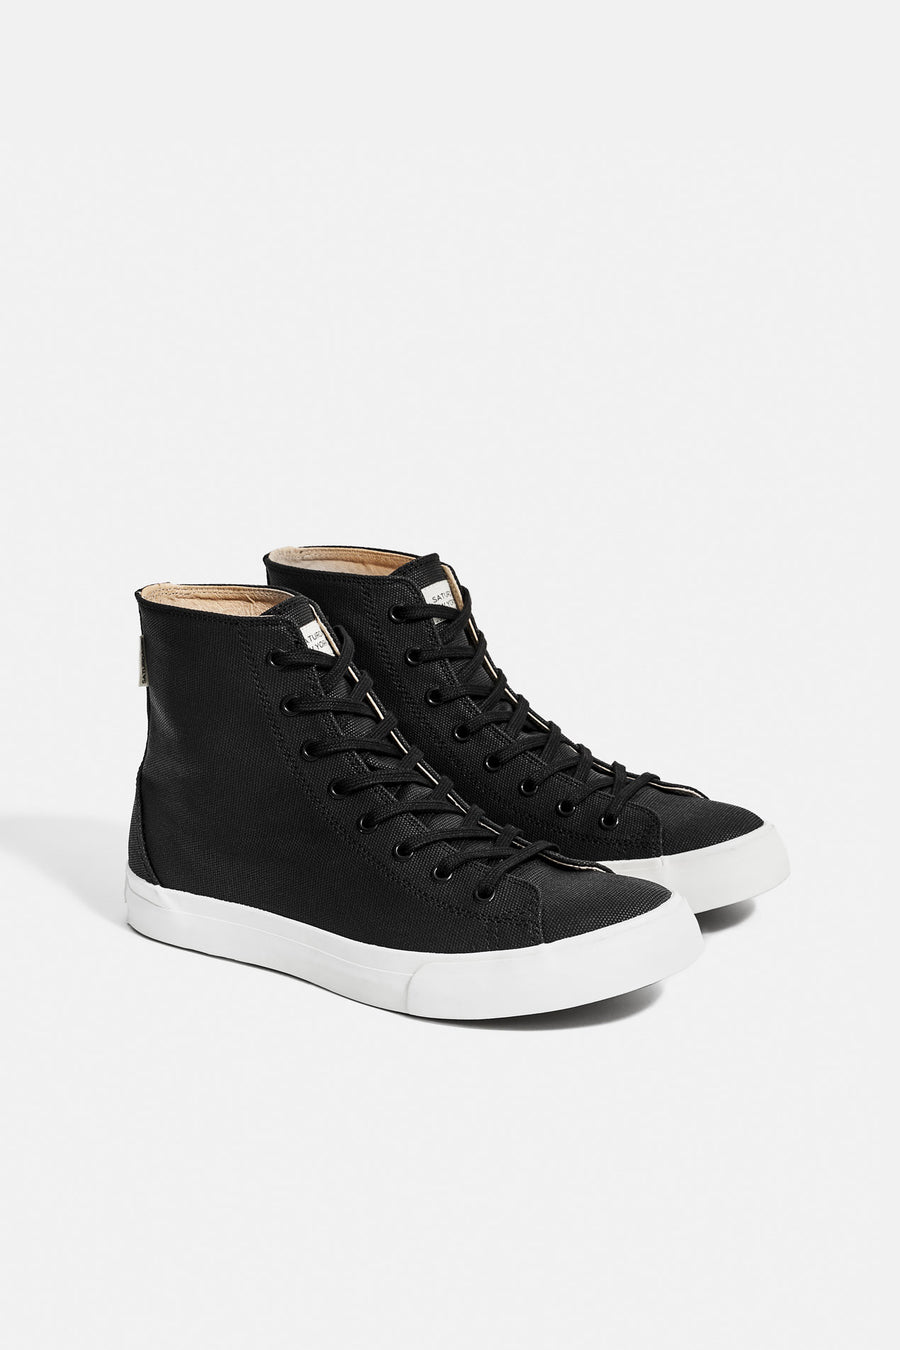 Mike Waxed High‑Top Sneakers Black - Pavilion